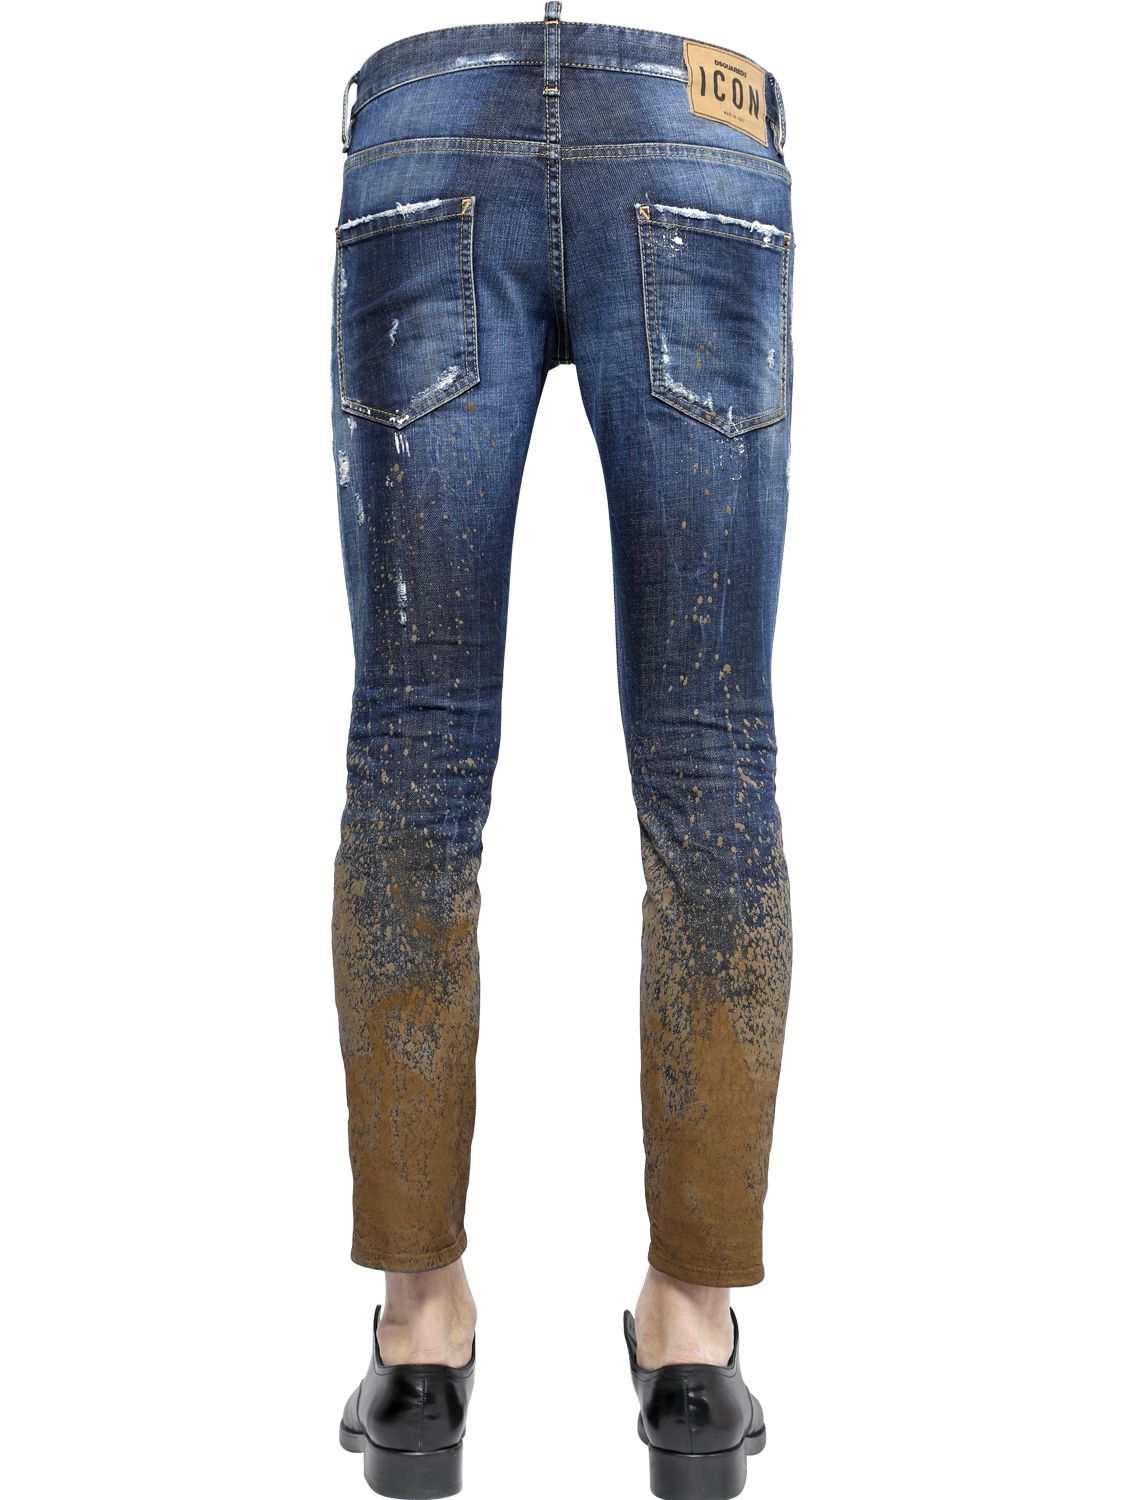 Nordstrom is selling $425 jeans covered in fake mud, Mike Rowe ...